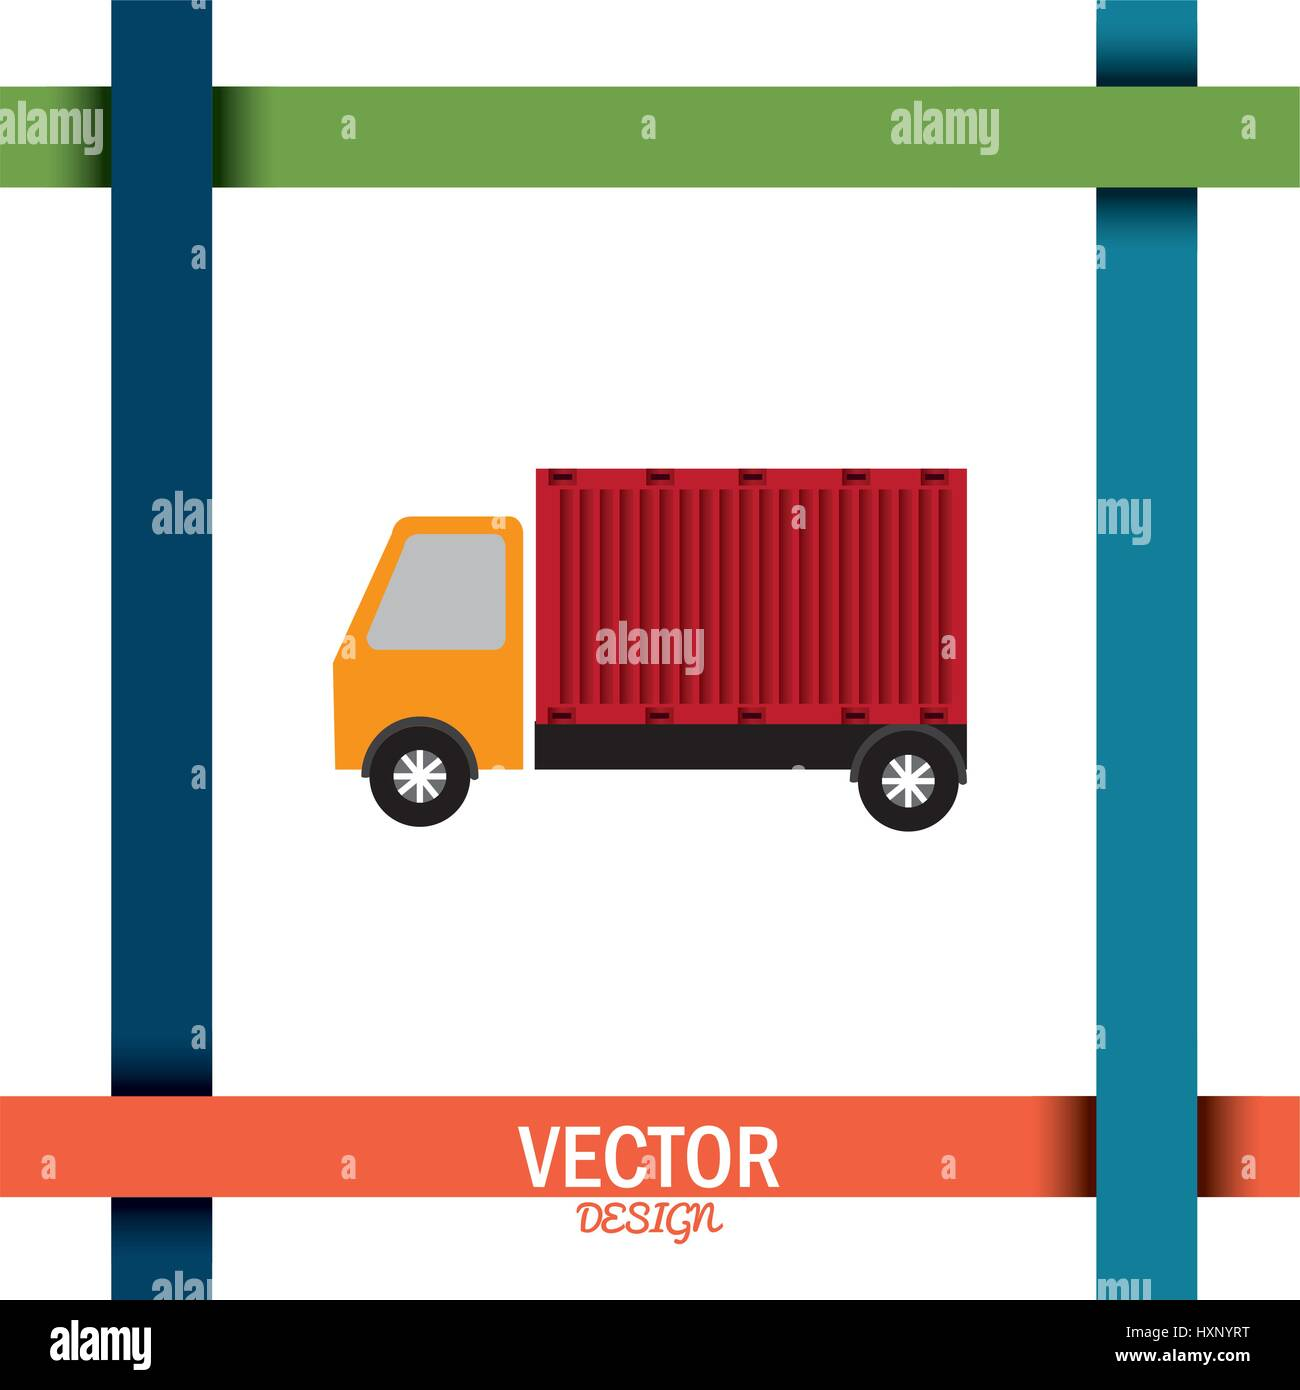 delivery service design  - Stock Image